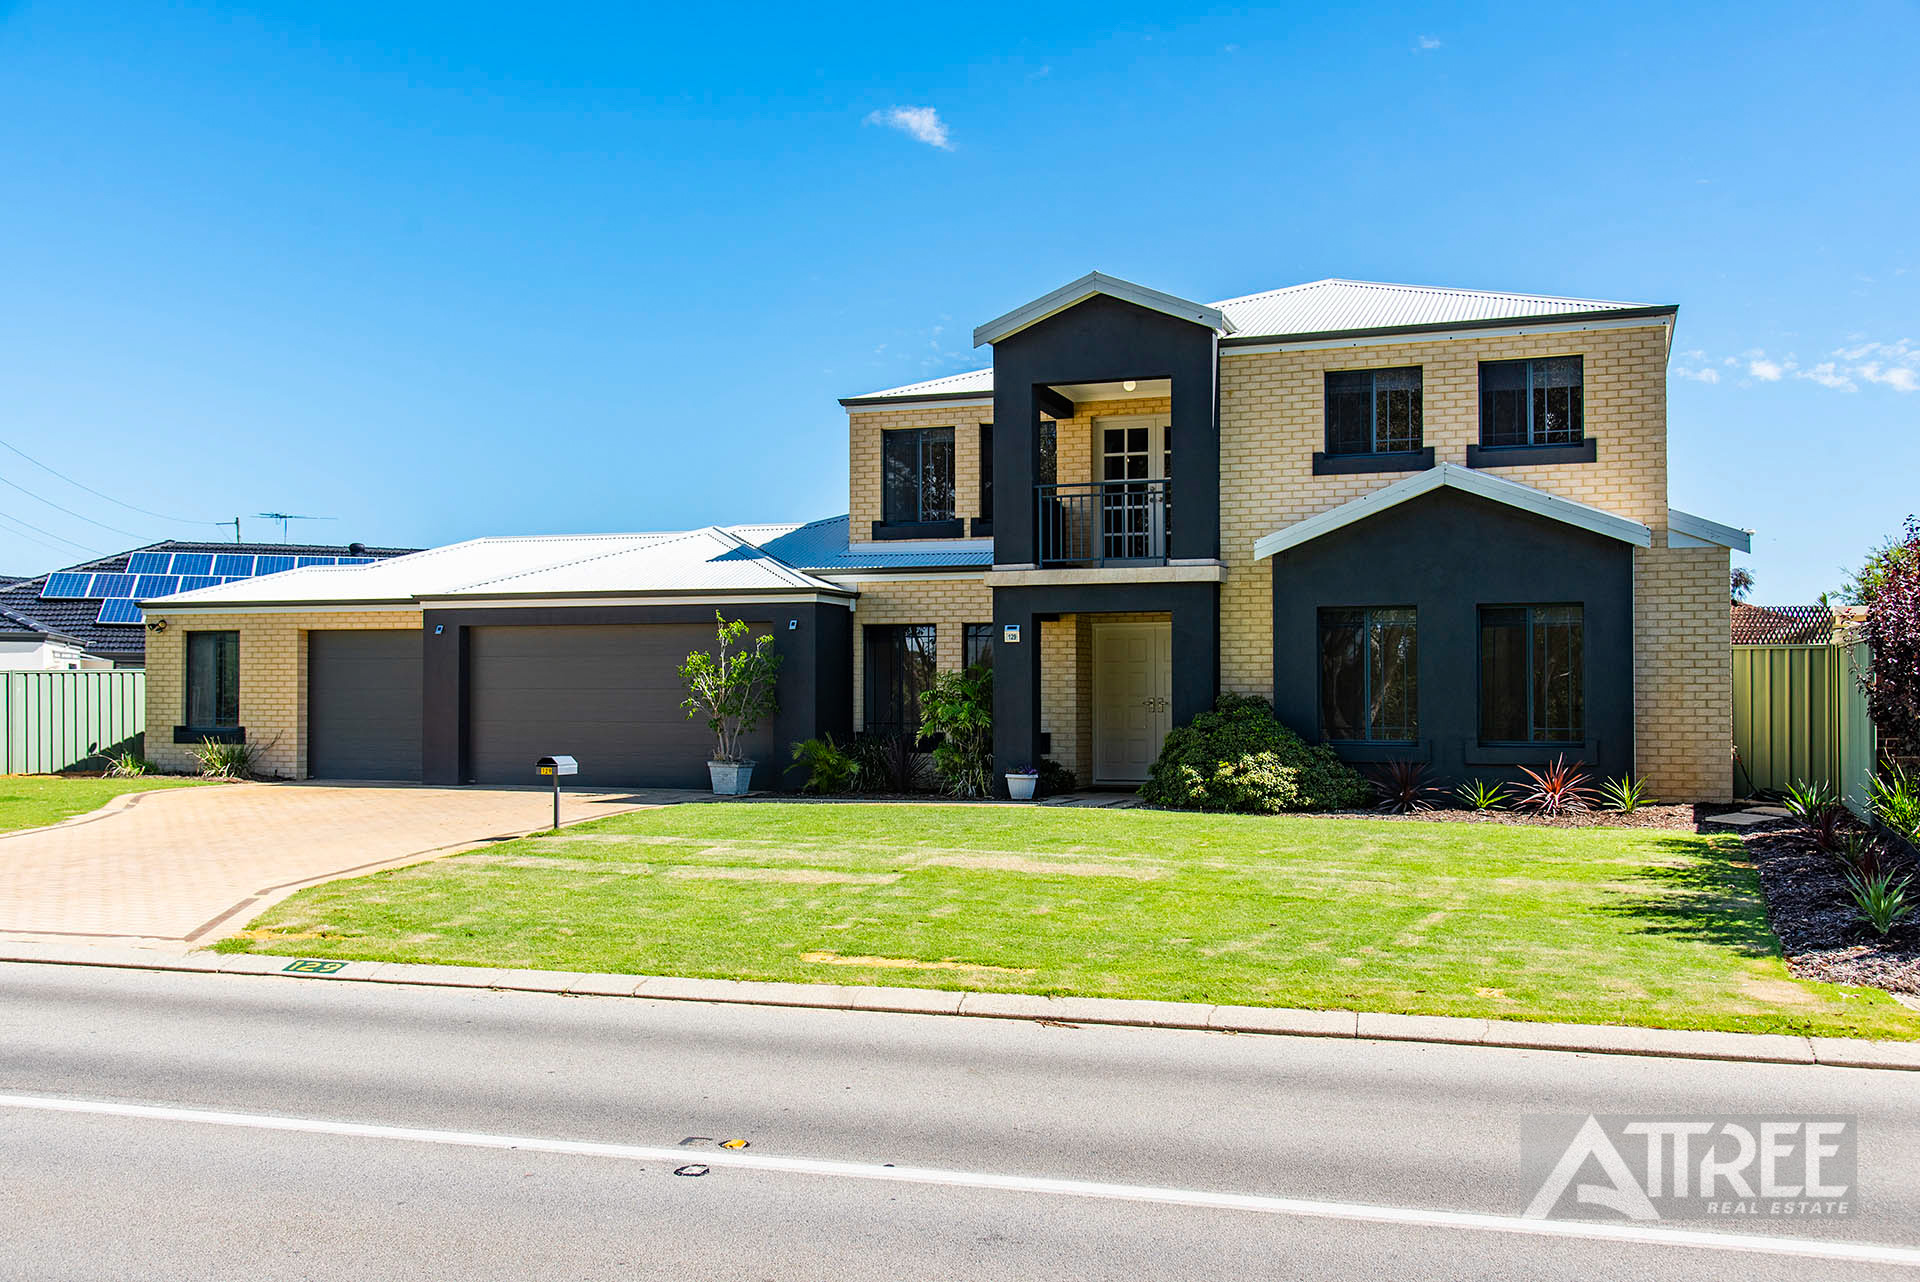 Property for sale in SOUTHERN RIVER, 129 Lakey Street : Attree Real Estate